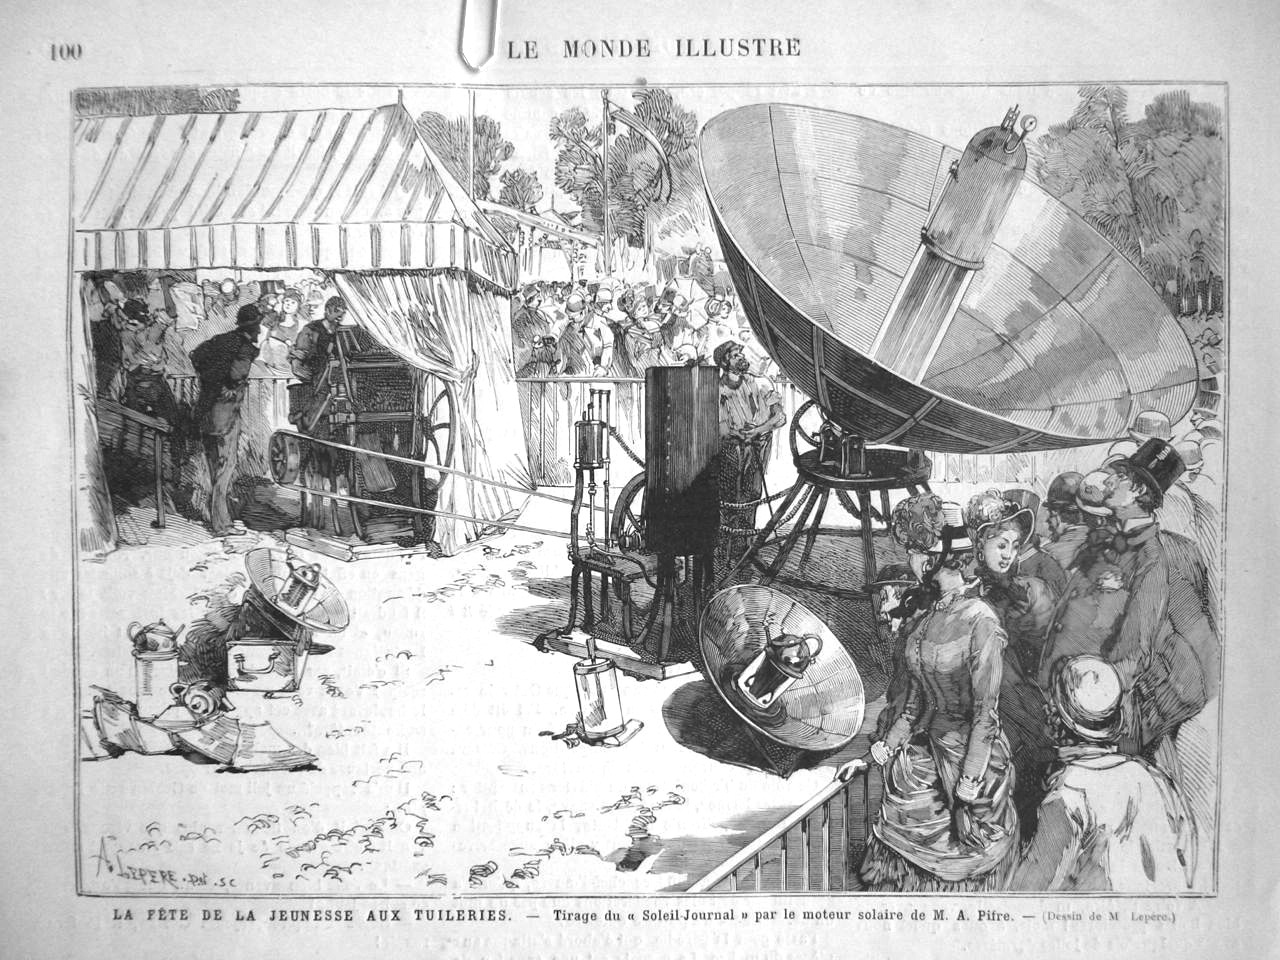 LeMondeIllustré_1882_SoleilJournal_PaleoEnergetique